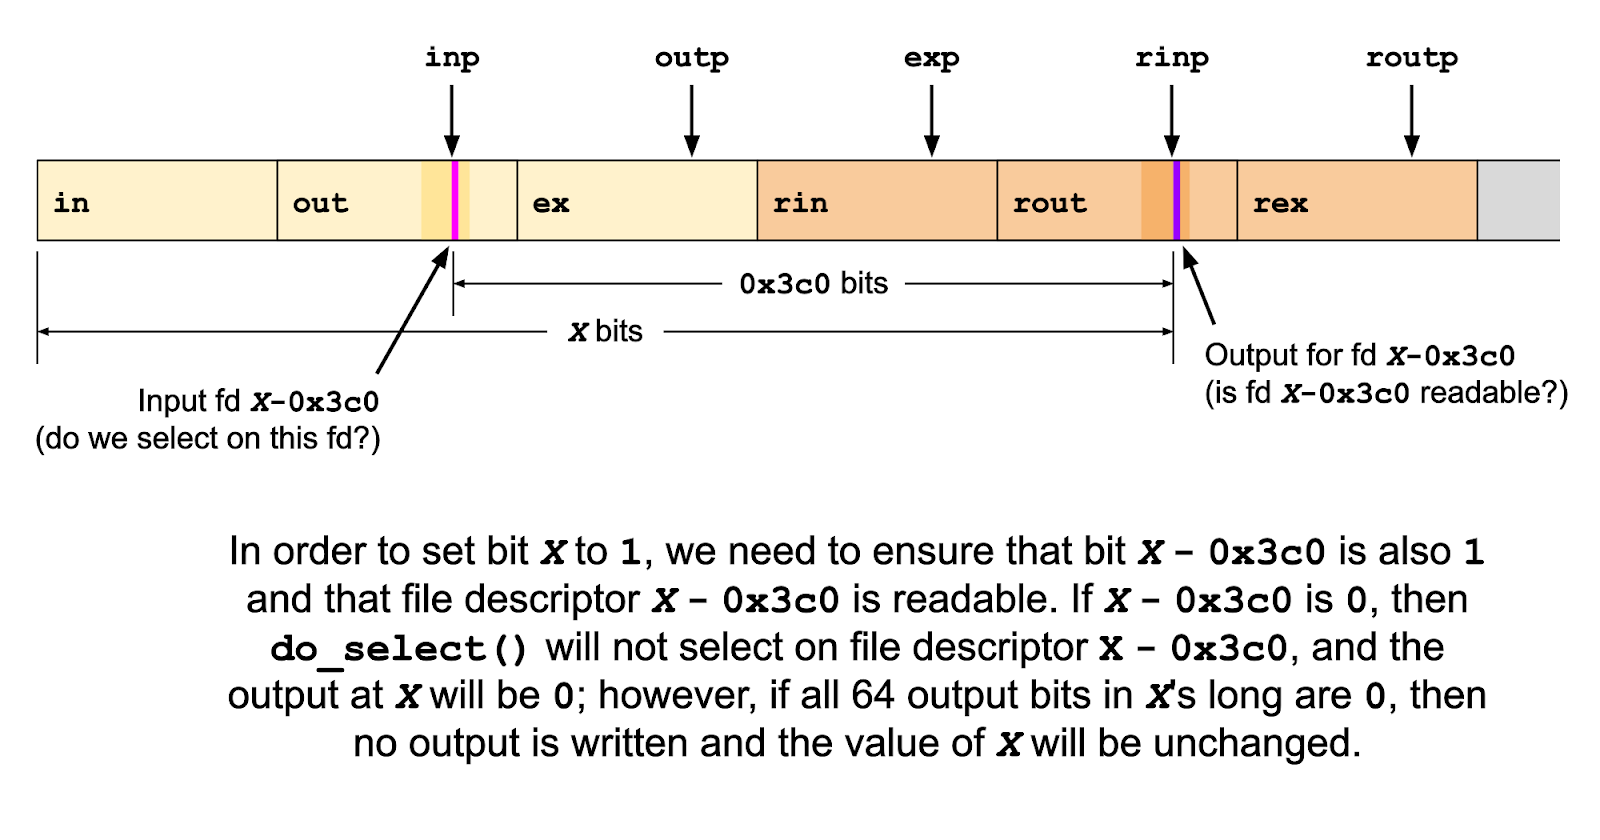 A diagram showing the cyclical dependency of bit values that can be written using this buffer overflow. In order to set bit X to 1, we need to ensure that bit X - 0x3c0 is also 1 and that file descriptor X - 0x3c0 is readable. If X - 0x3c0 is 0, then do_select() will not select on file descriptor X - 0x3c0, and the output at X will be 0; however, if all 64 output bits in X's long are 0, then no output is written and the value of X will be unchanged.